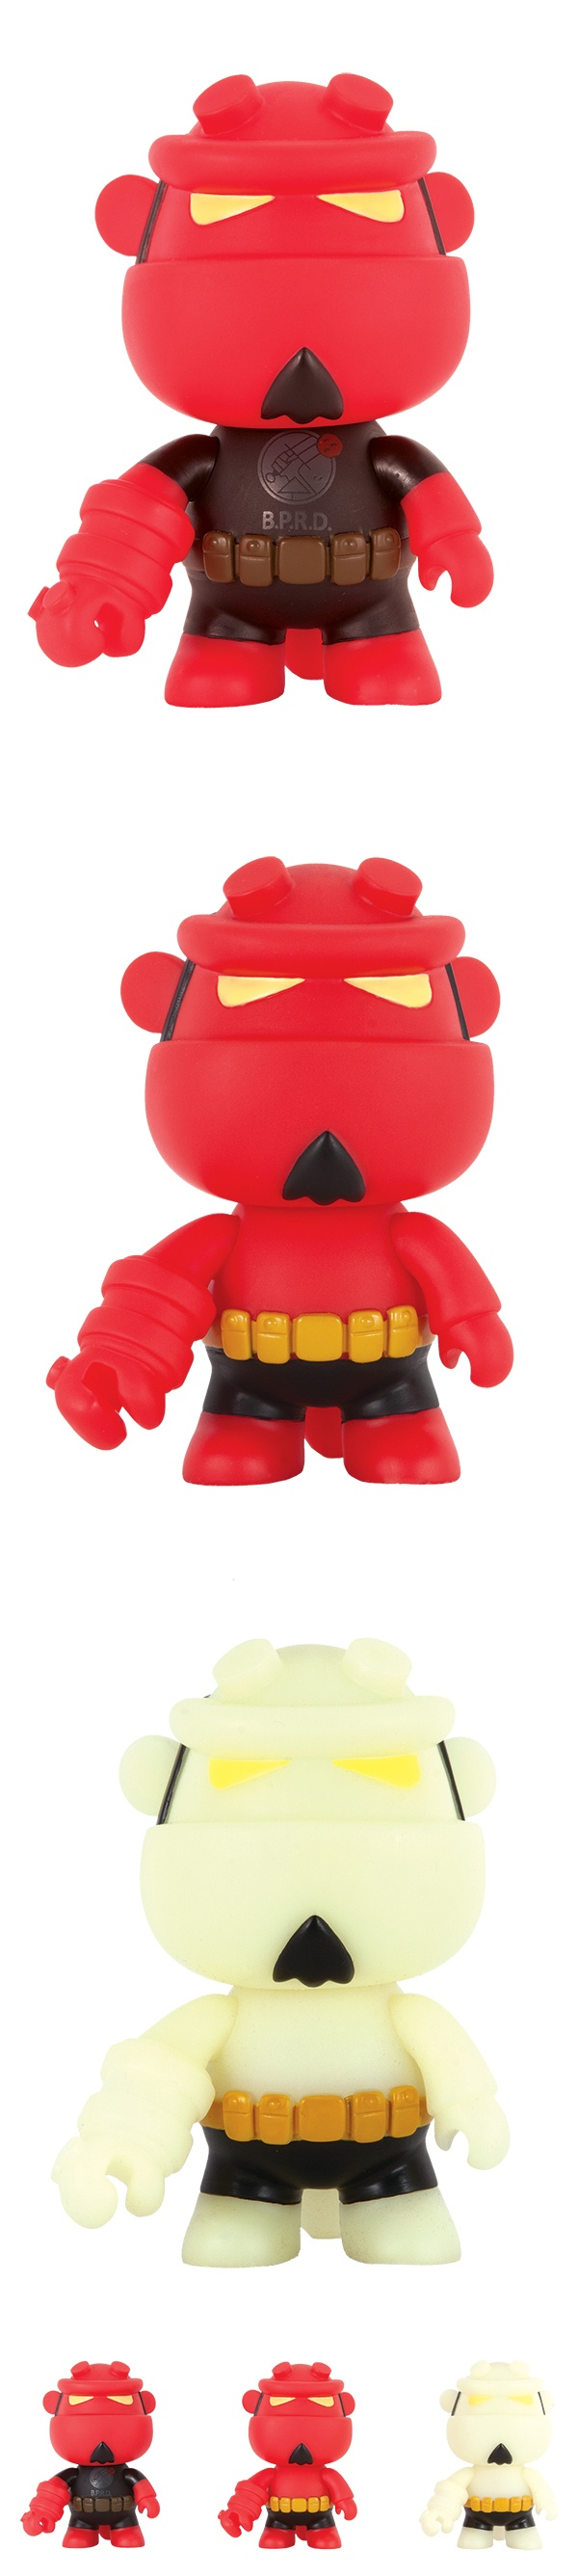 """At this year's International Toy Fair, Dark Horse revealed what is sure to be one of the year's most-talked-about toy releases! Hong Kong's innovative designer-toy company Toy2R will produce a new range of 5"""" vinyl figures in their popular """"Mini-Qee"""" format, putting their unique design spin on Mike Mignola's popular Hellboy character."""